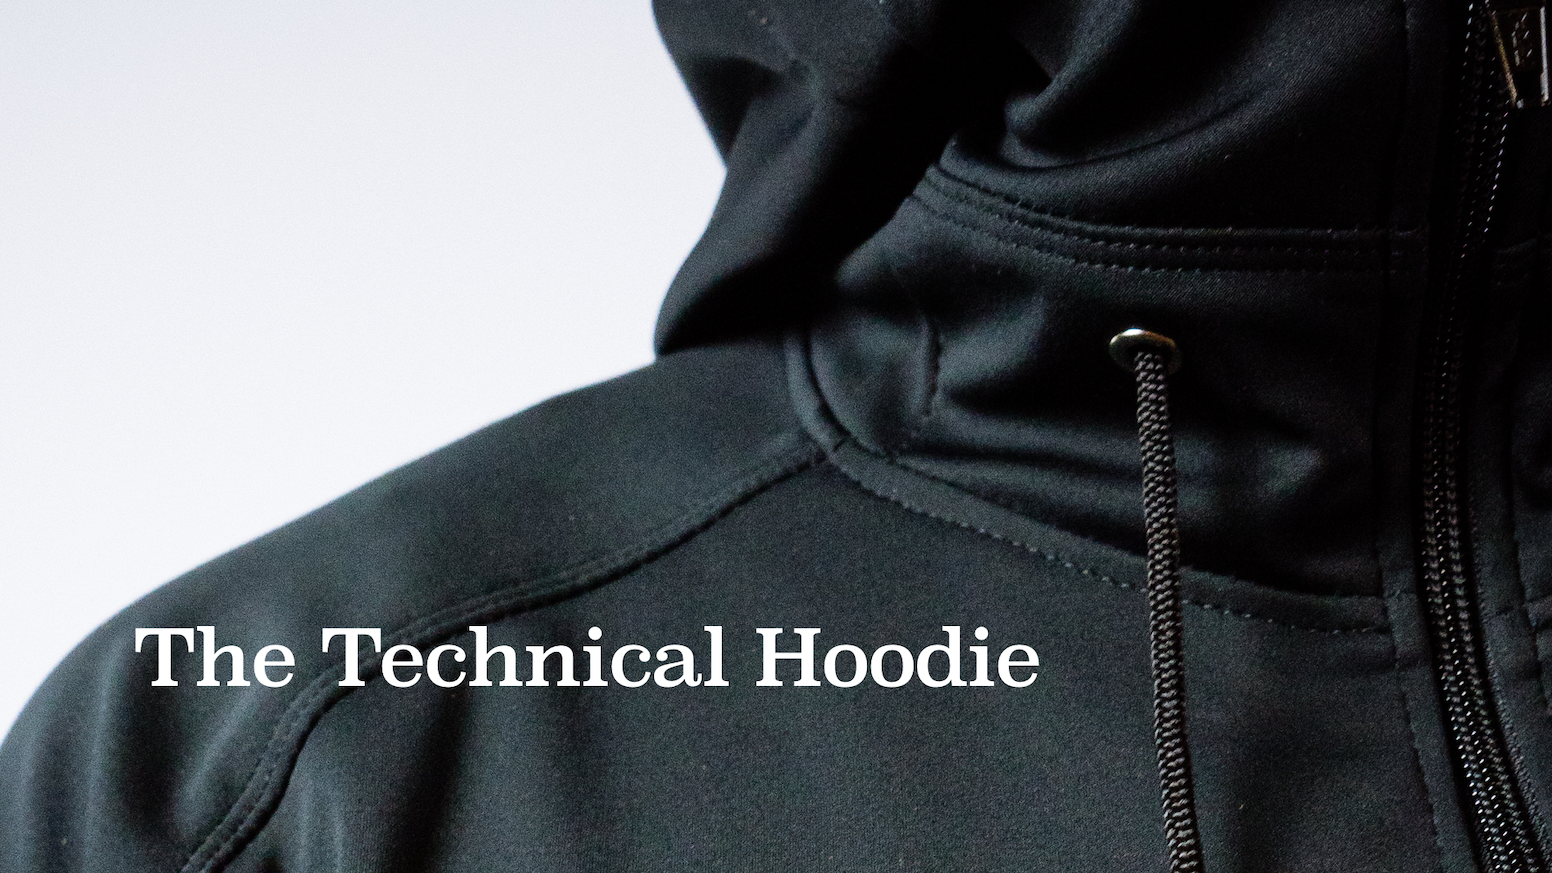 A sharp, versatile hoodie that blurs the line between technical outerwear and casual everyday wear. Made in Seattle.